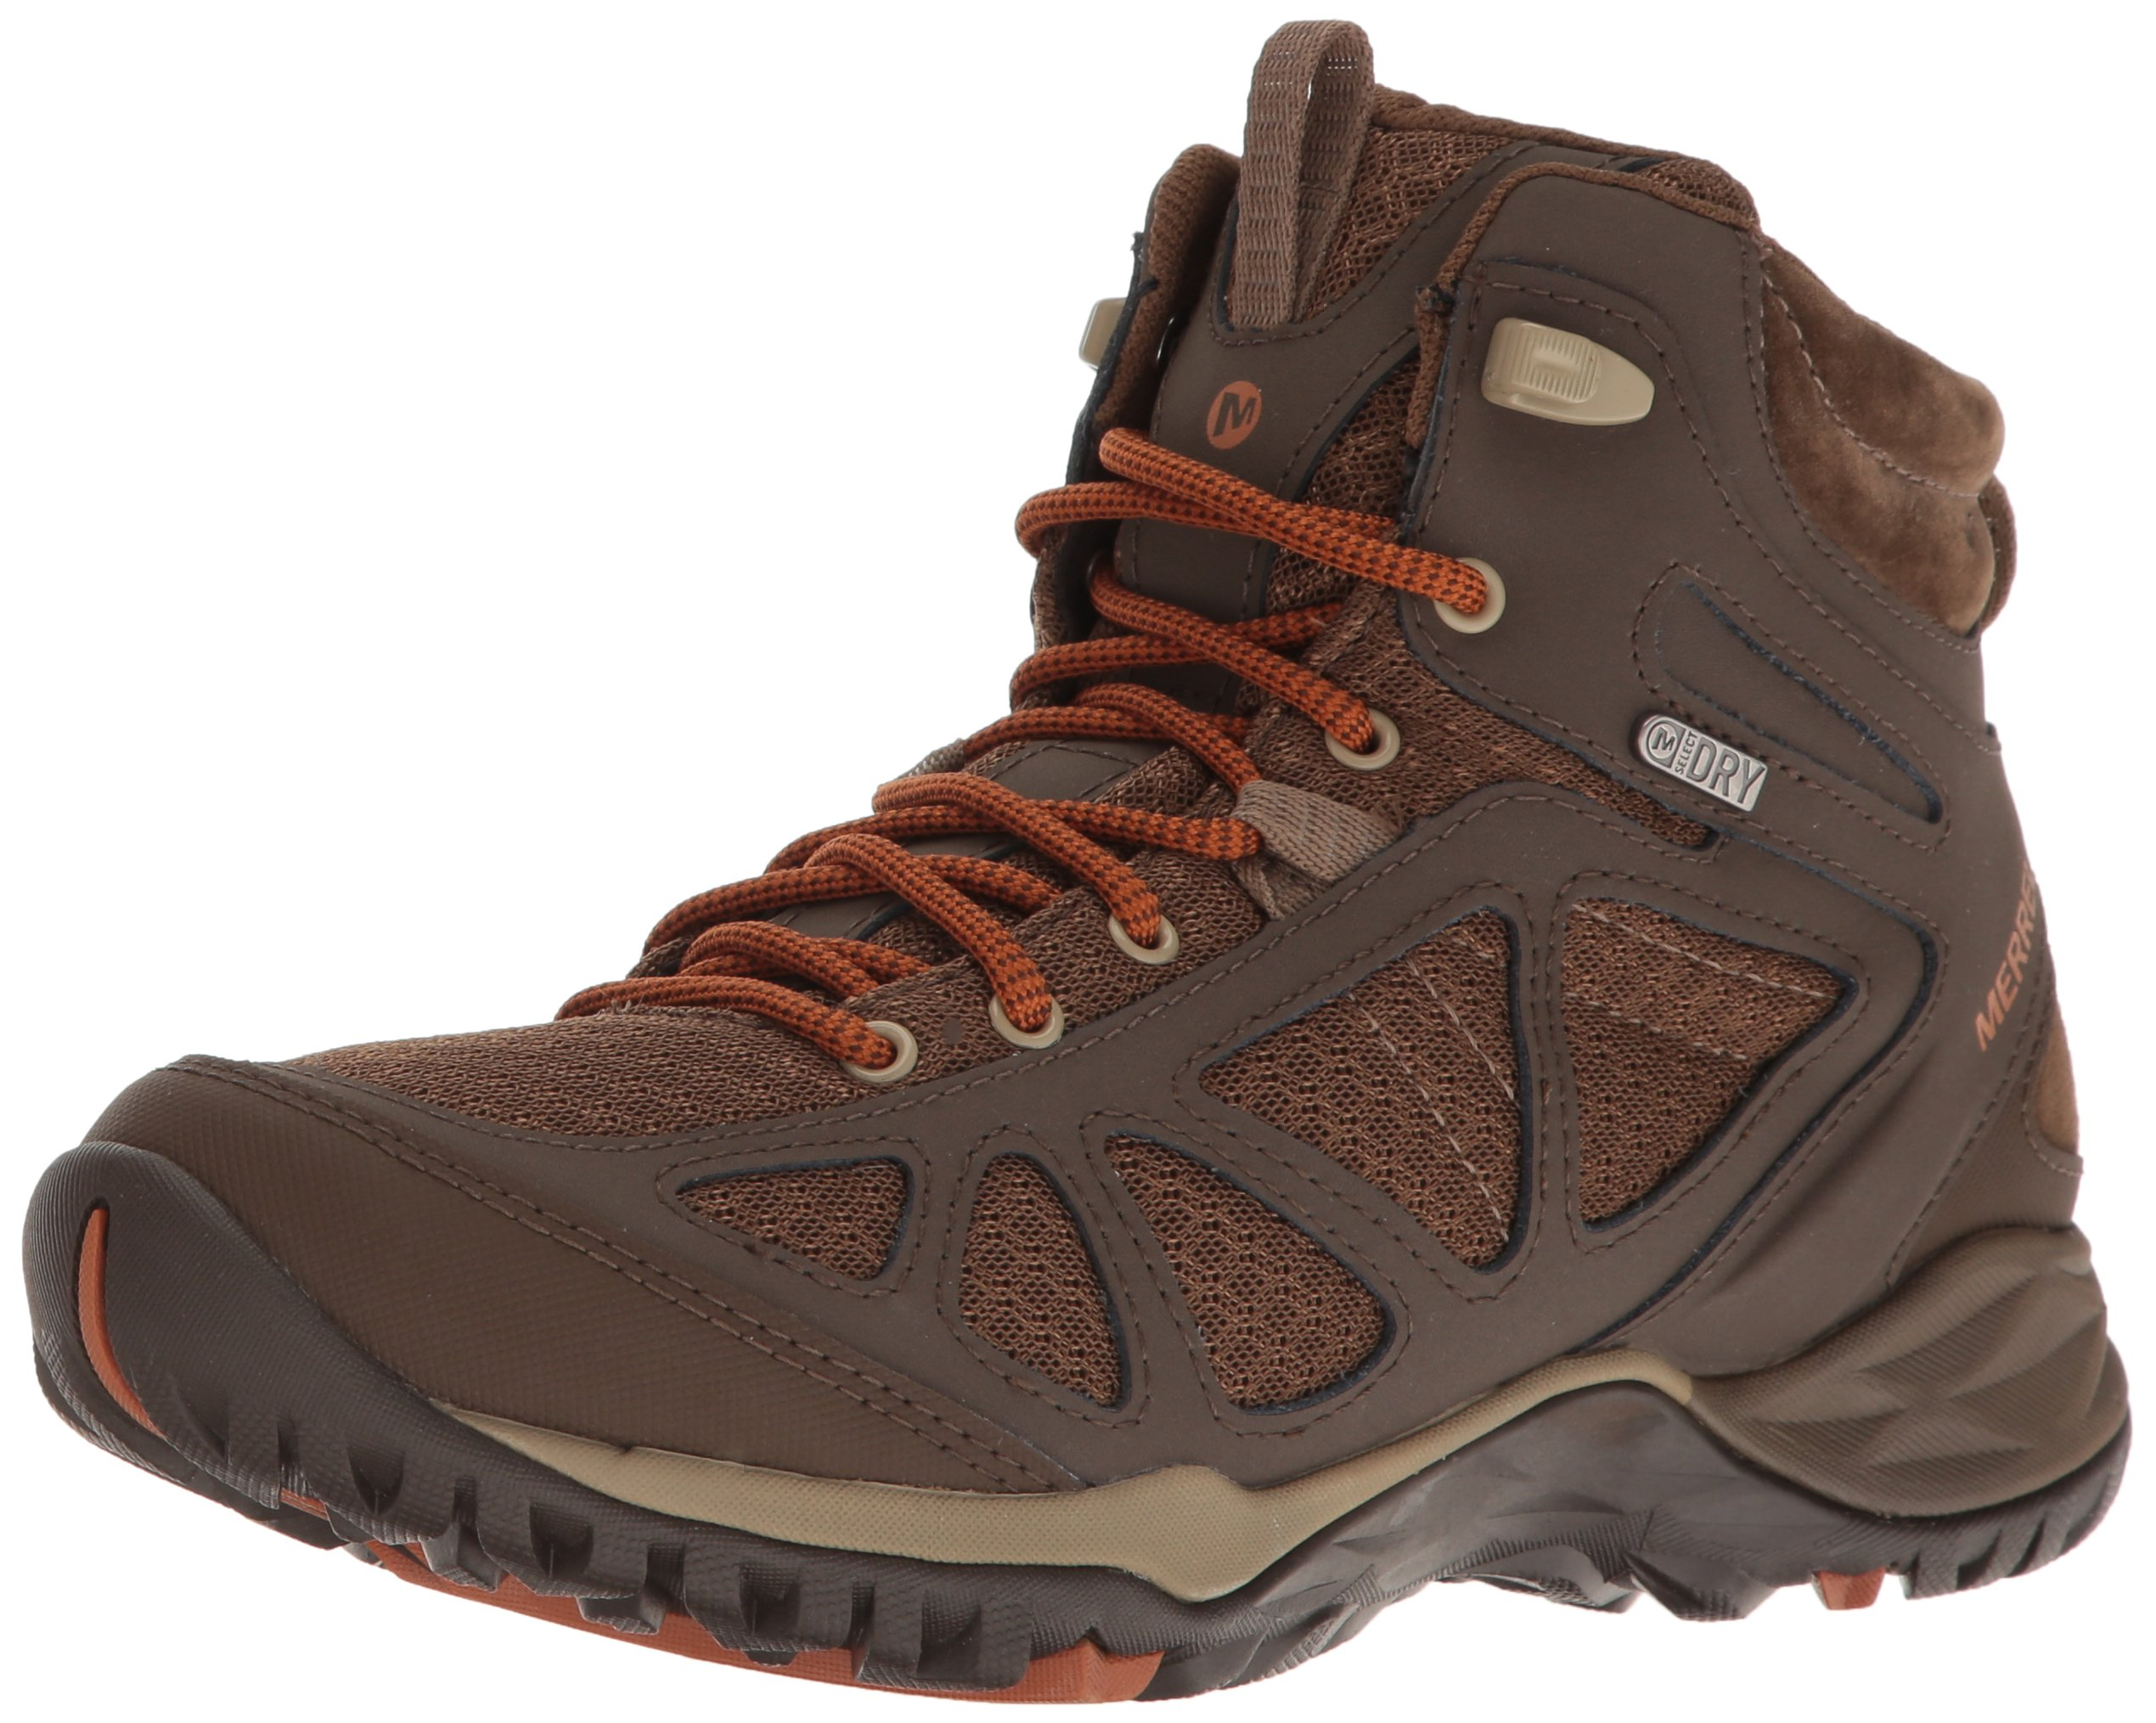 Merrell Women's Siren Sport Q2 Mid Waterproof Hiking Boot, Slate Black, 6 M US by Merrell